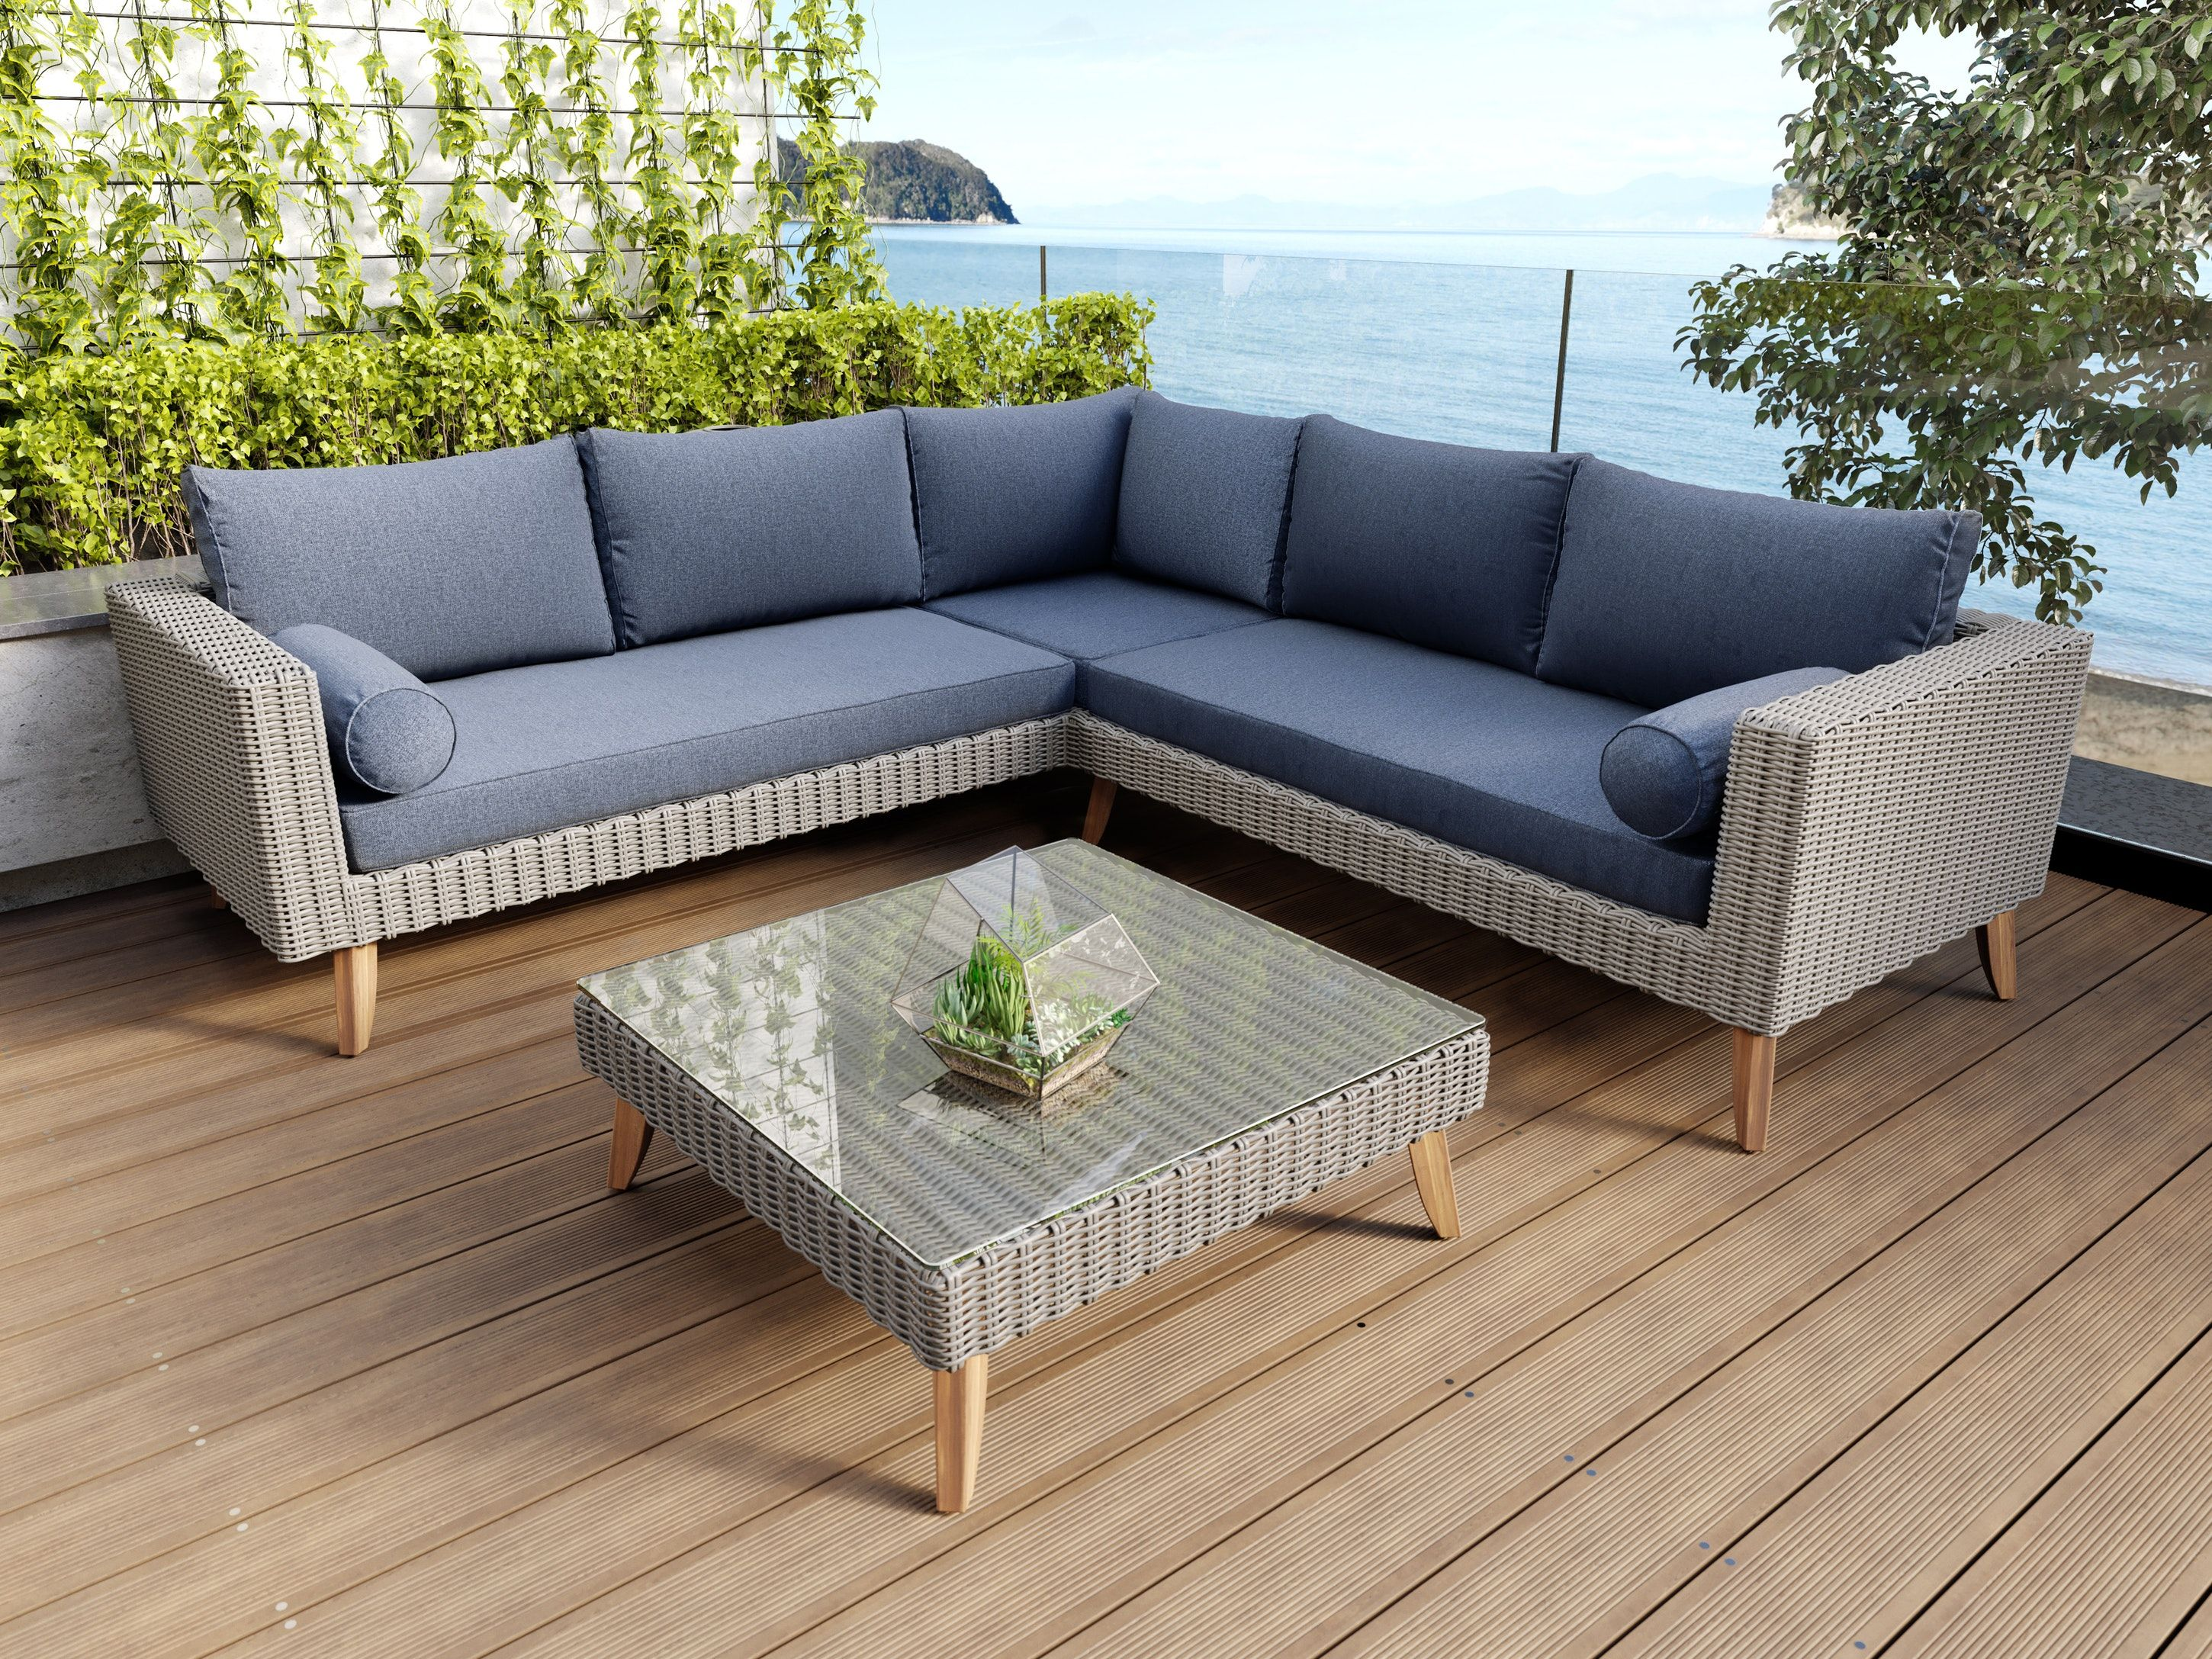 Palm Springs Rattan Corner Suite Outdoor Furniture Nz Outdoor Furniture Outdoor Lounge Set